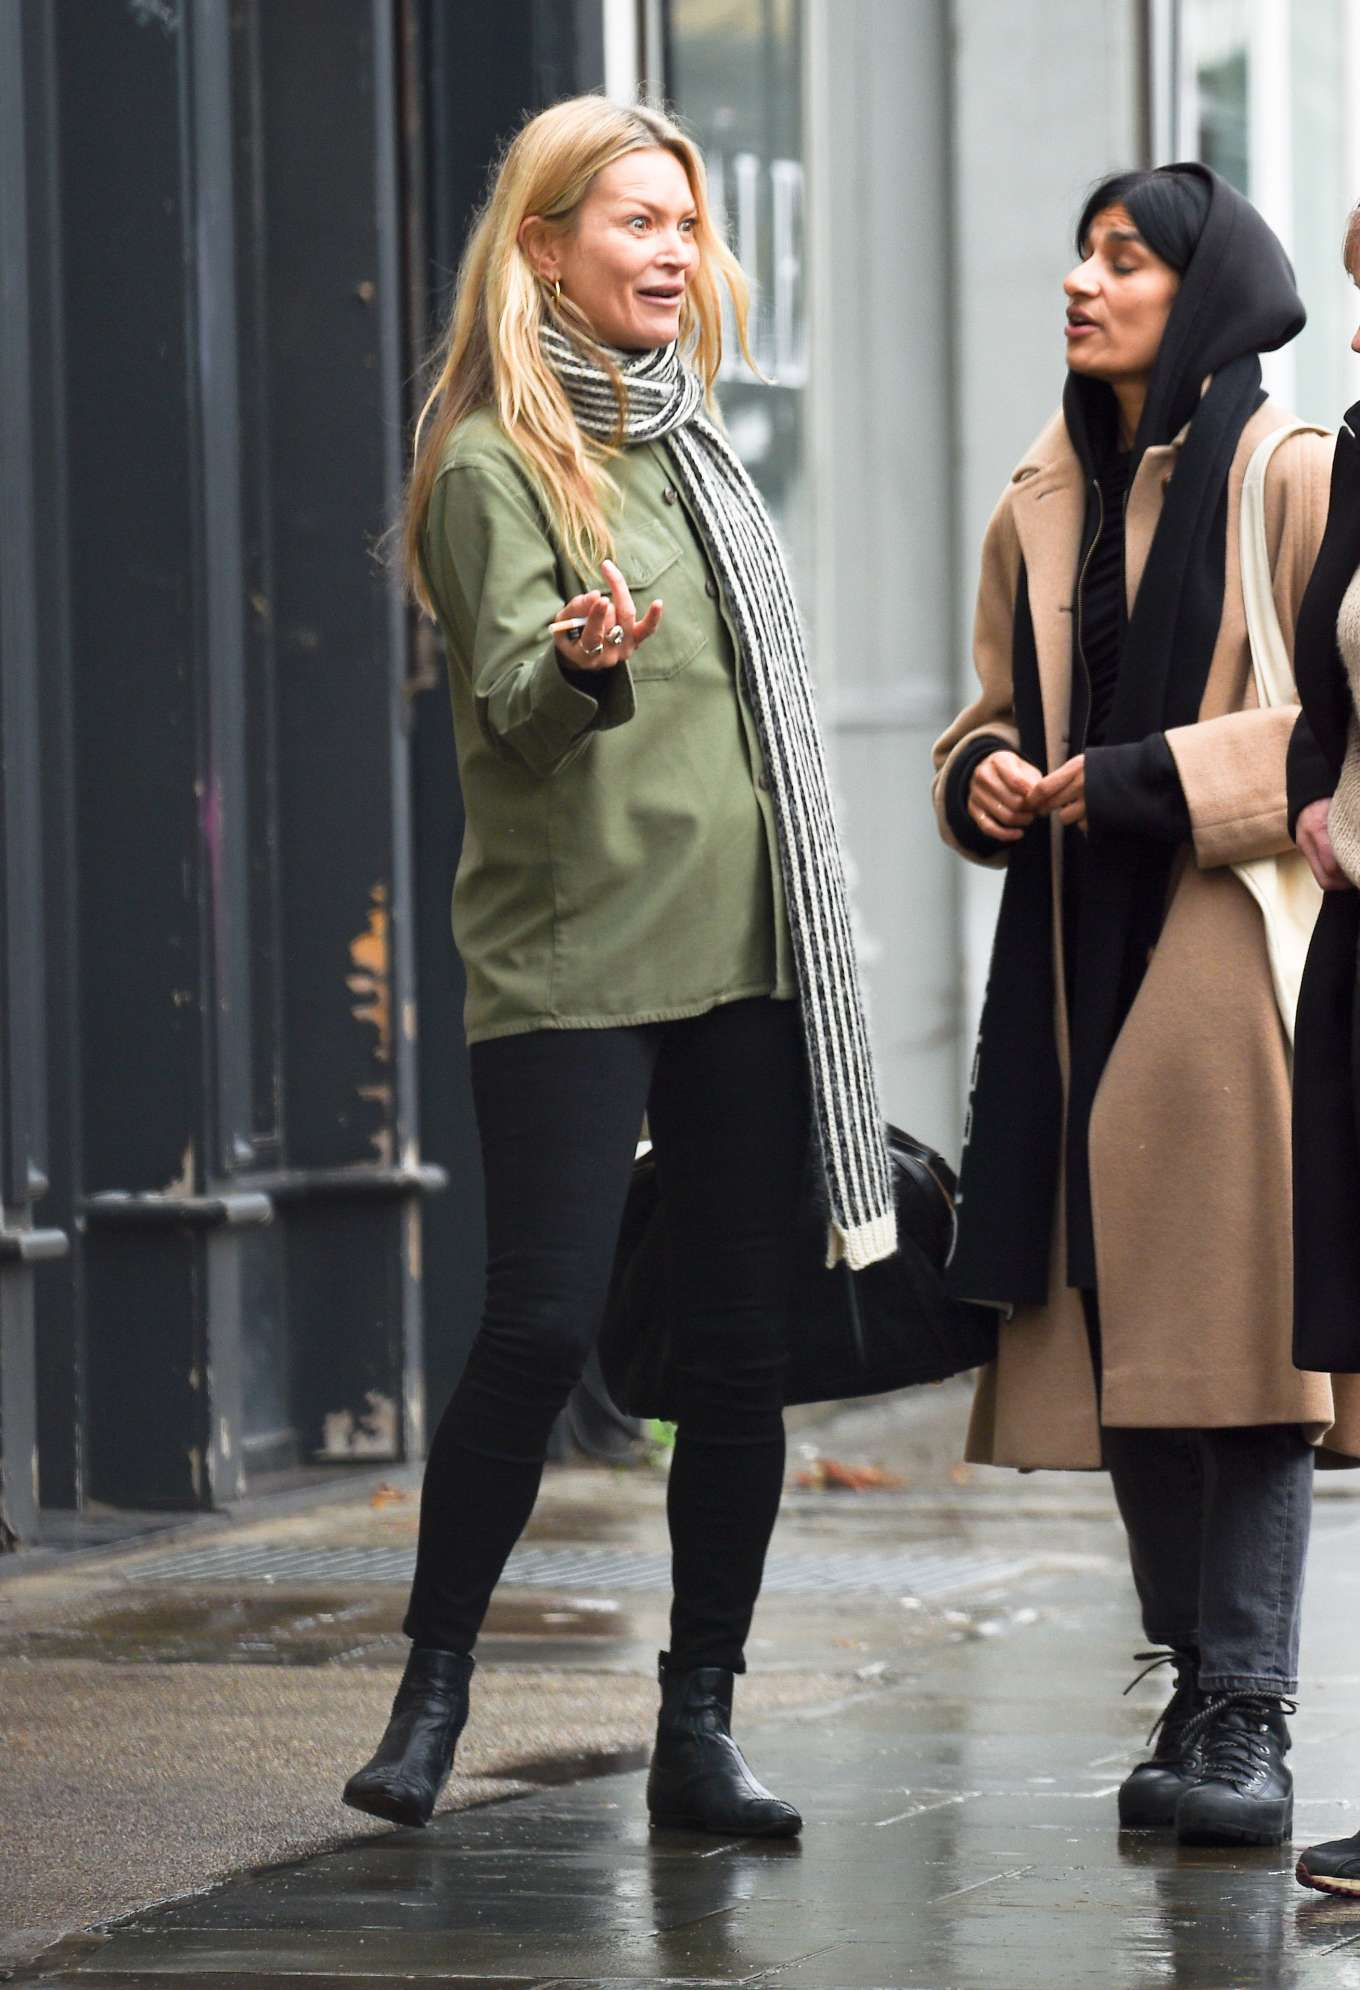 Kate Moss wearing black leather ankle boots with square heel